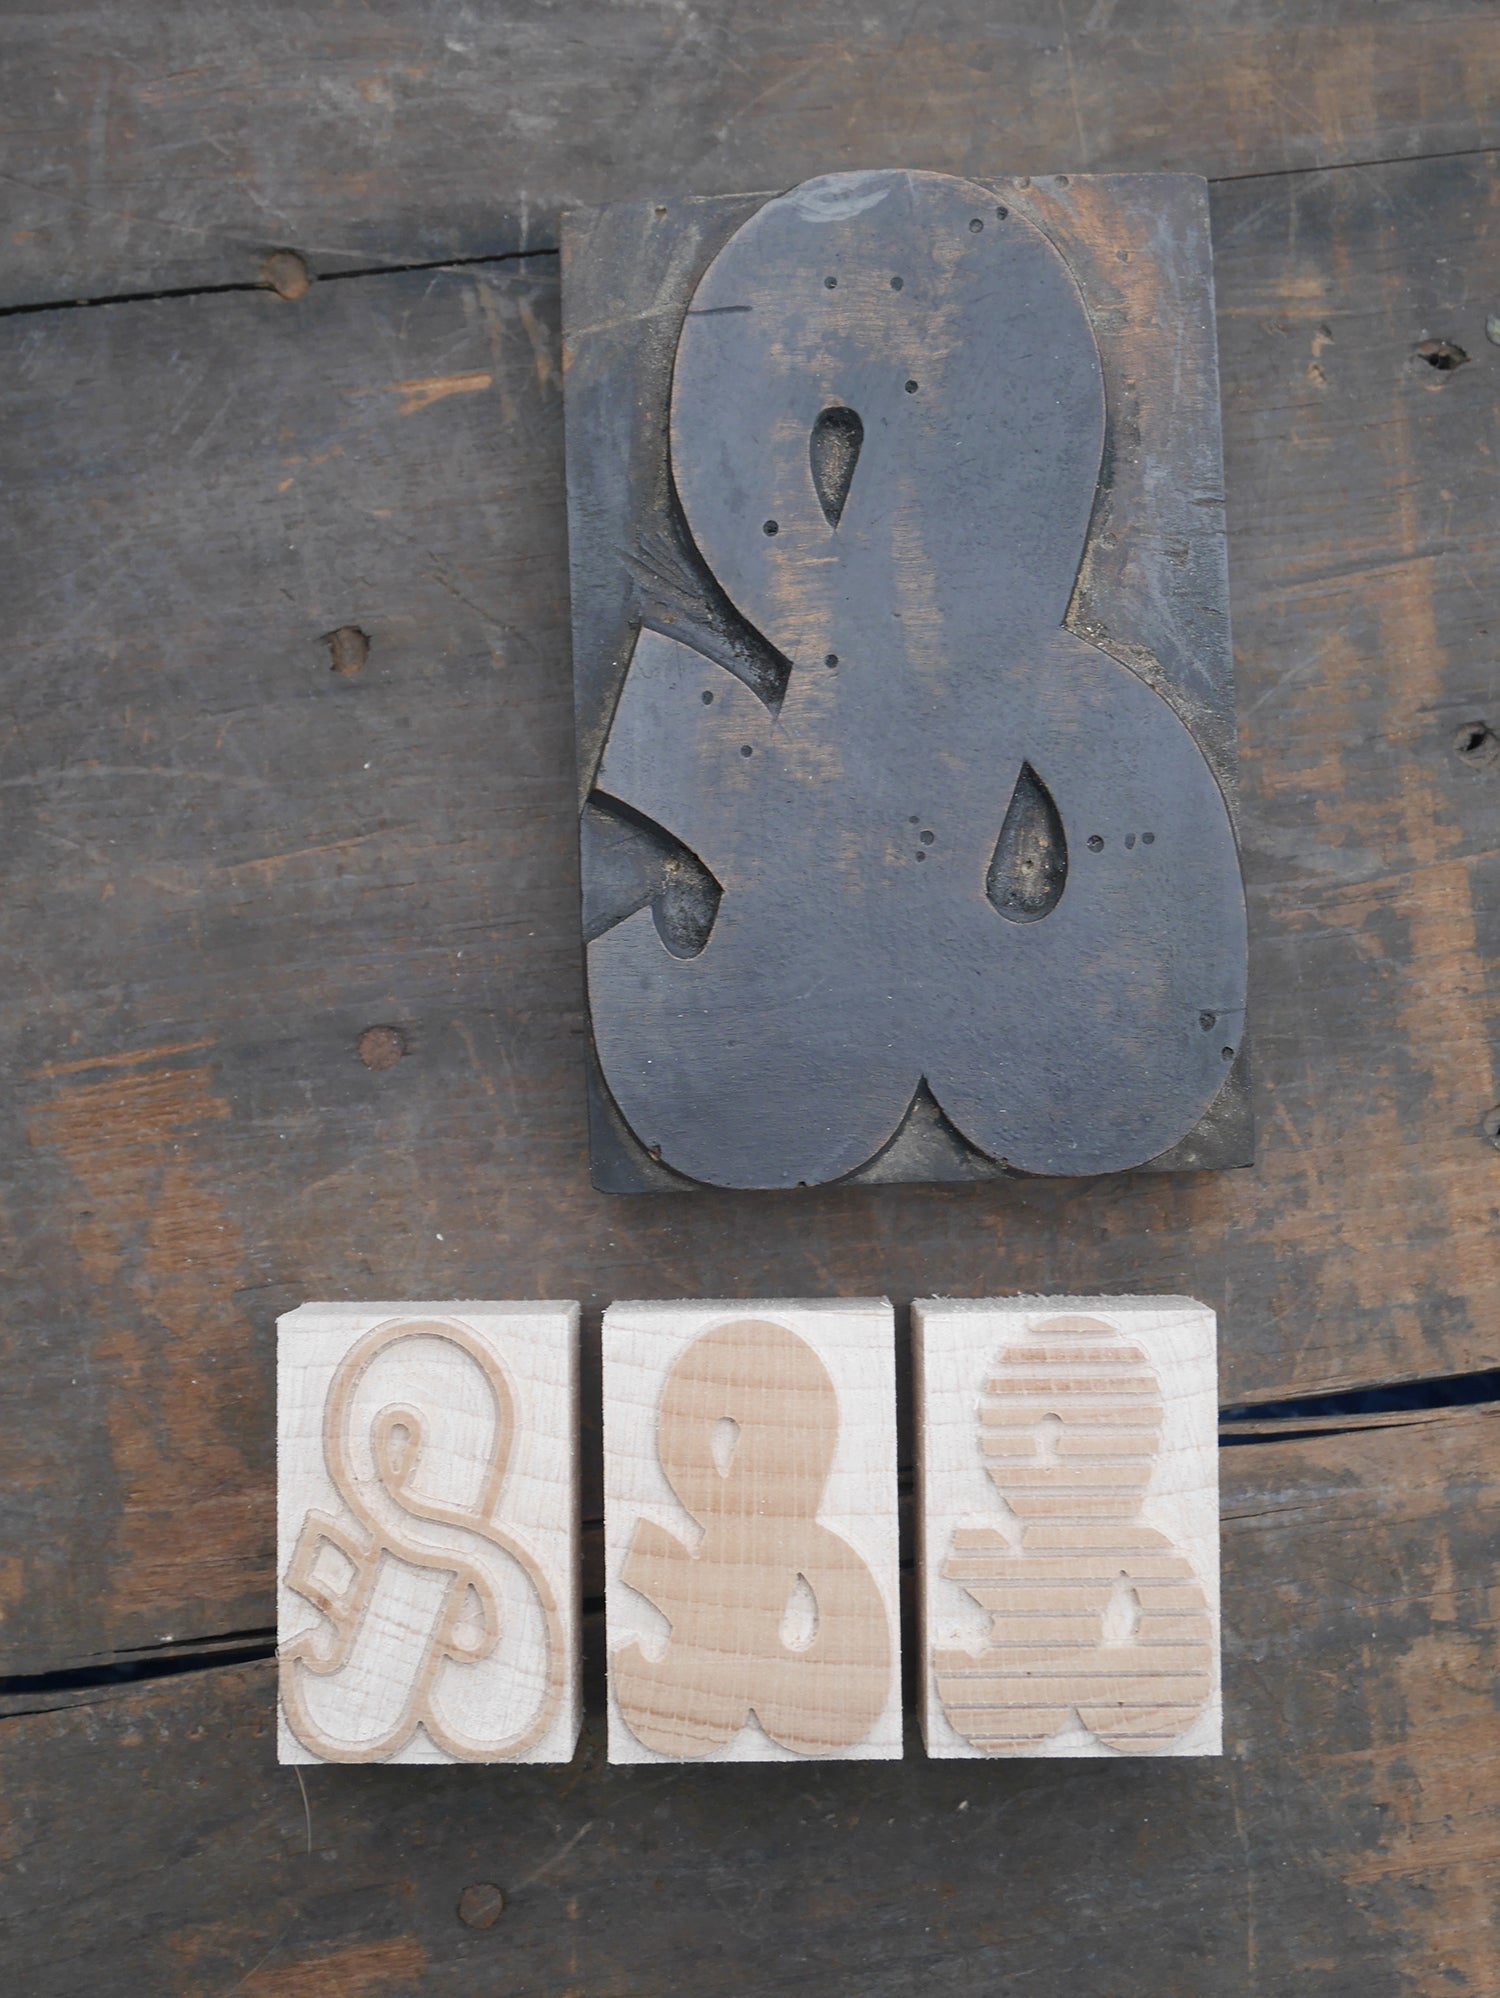 NEW Letterpress chromatic Bonnewell Ampersand - 3 block set - 12 line size